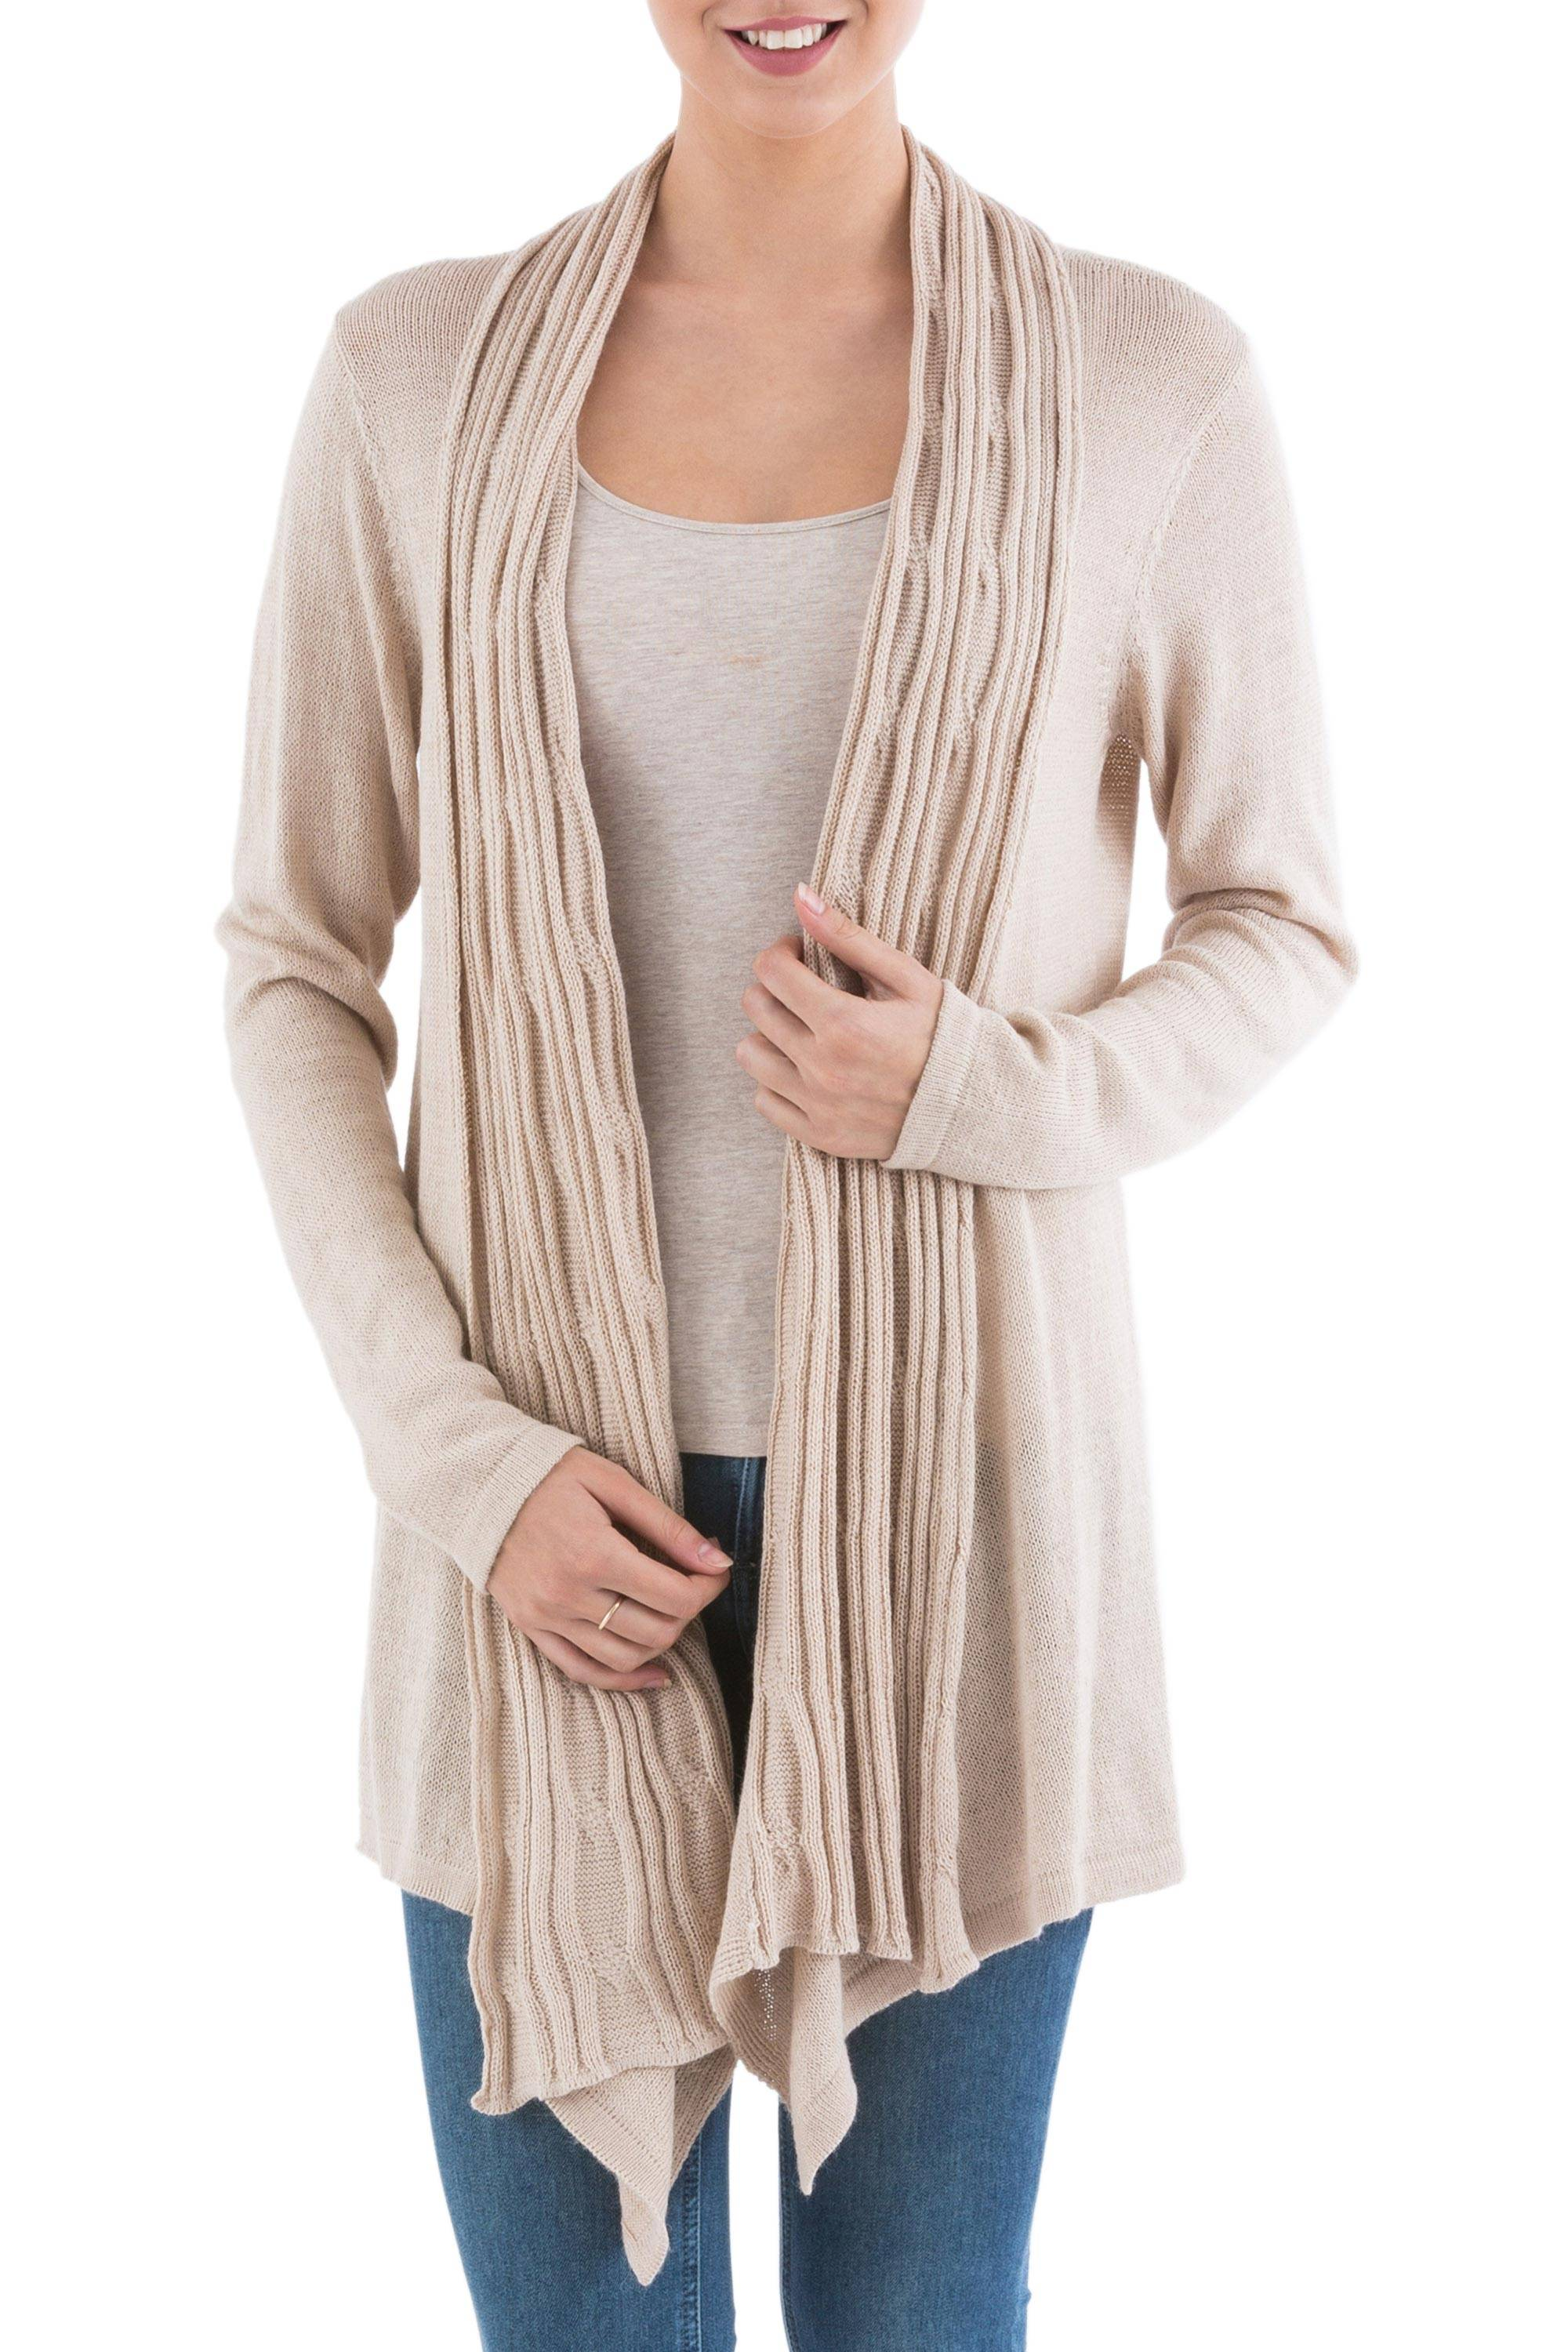 Revamp your wardrobe. Made from a soft blend of acrylic and alpaca wool, the long-sleeved light beige sweater has an open front with an attractive sidetail hem.